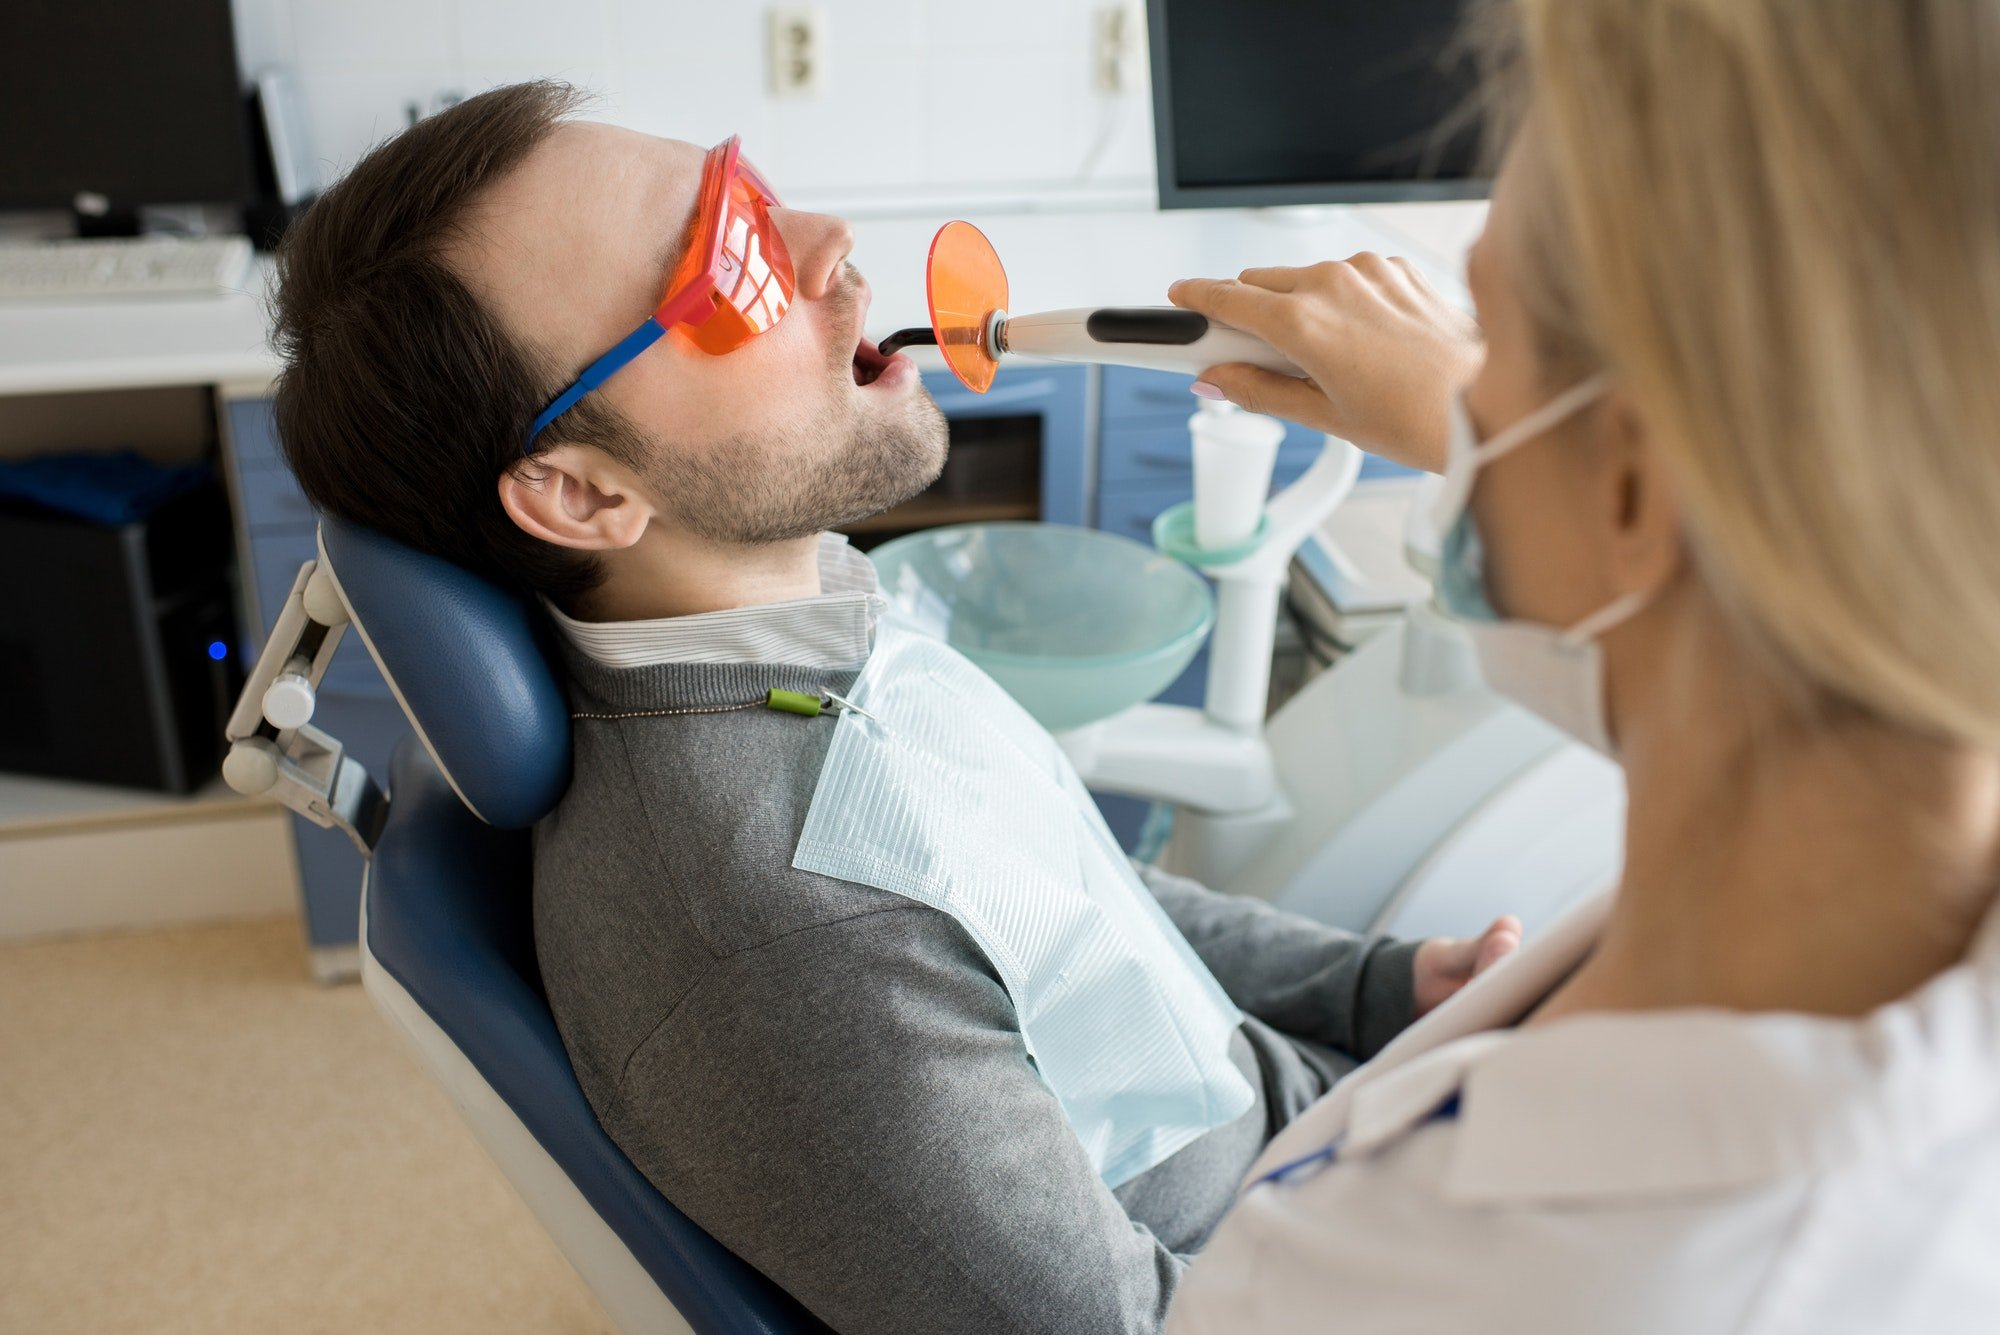 Is laser dentistry painful